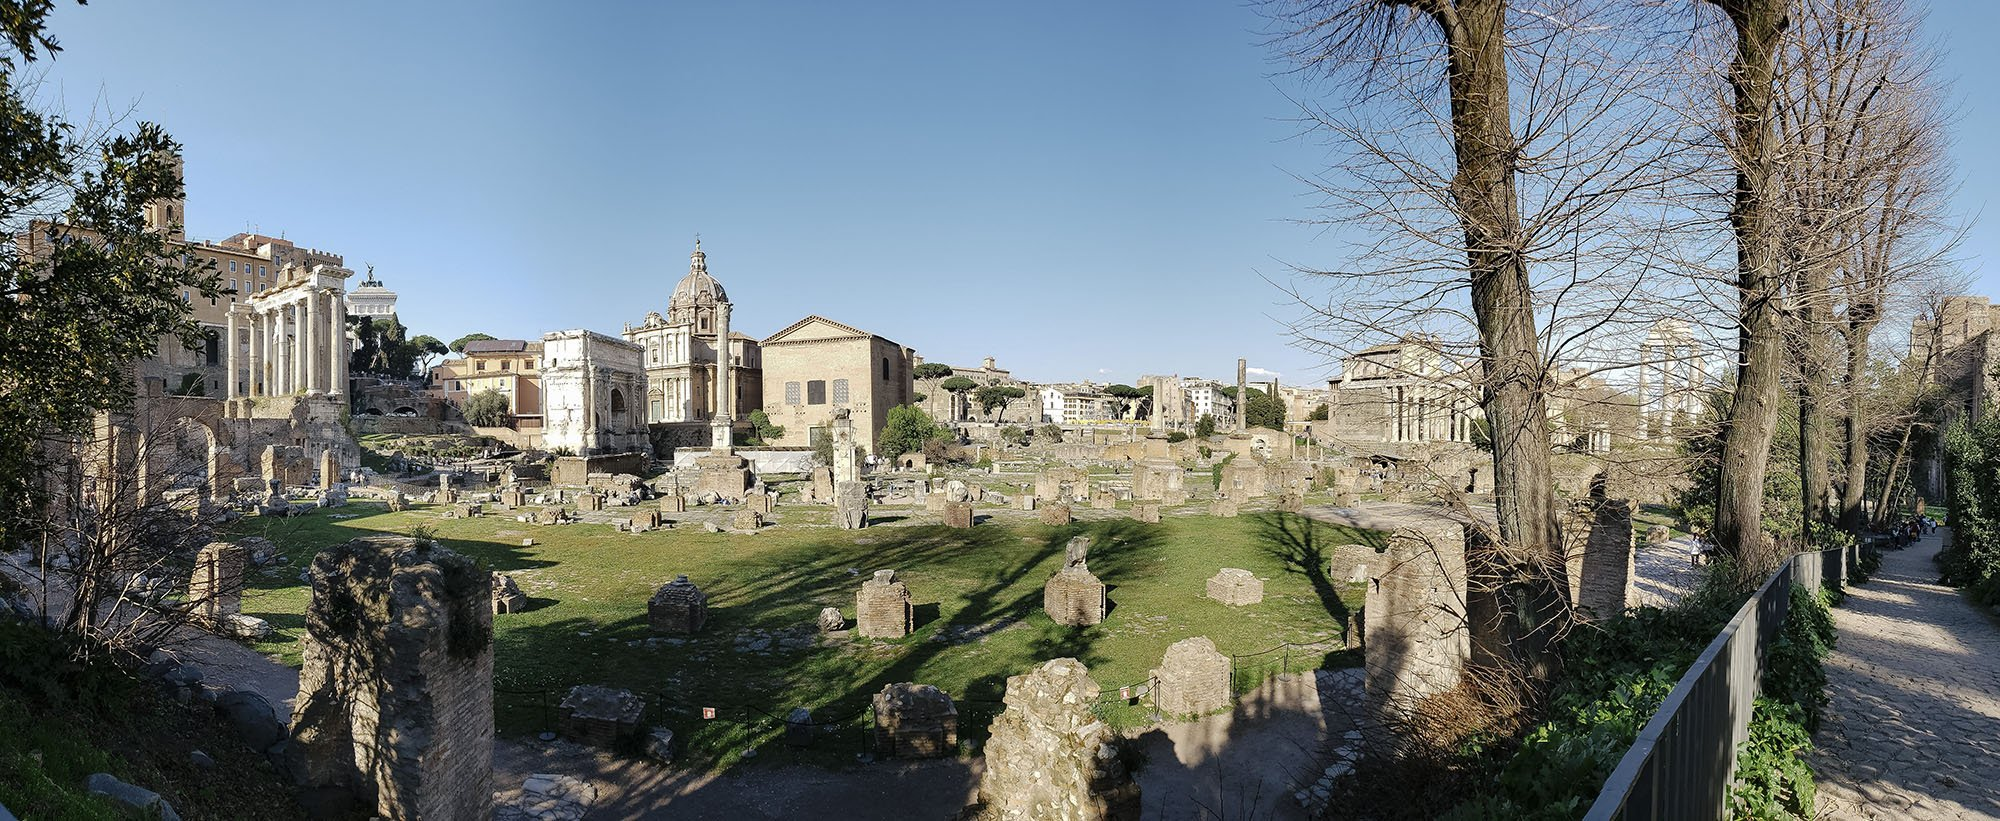 The Roman Forum and Colosseum